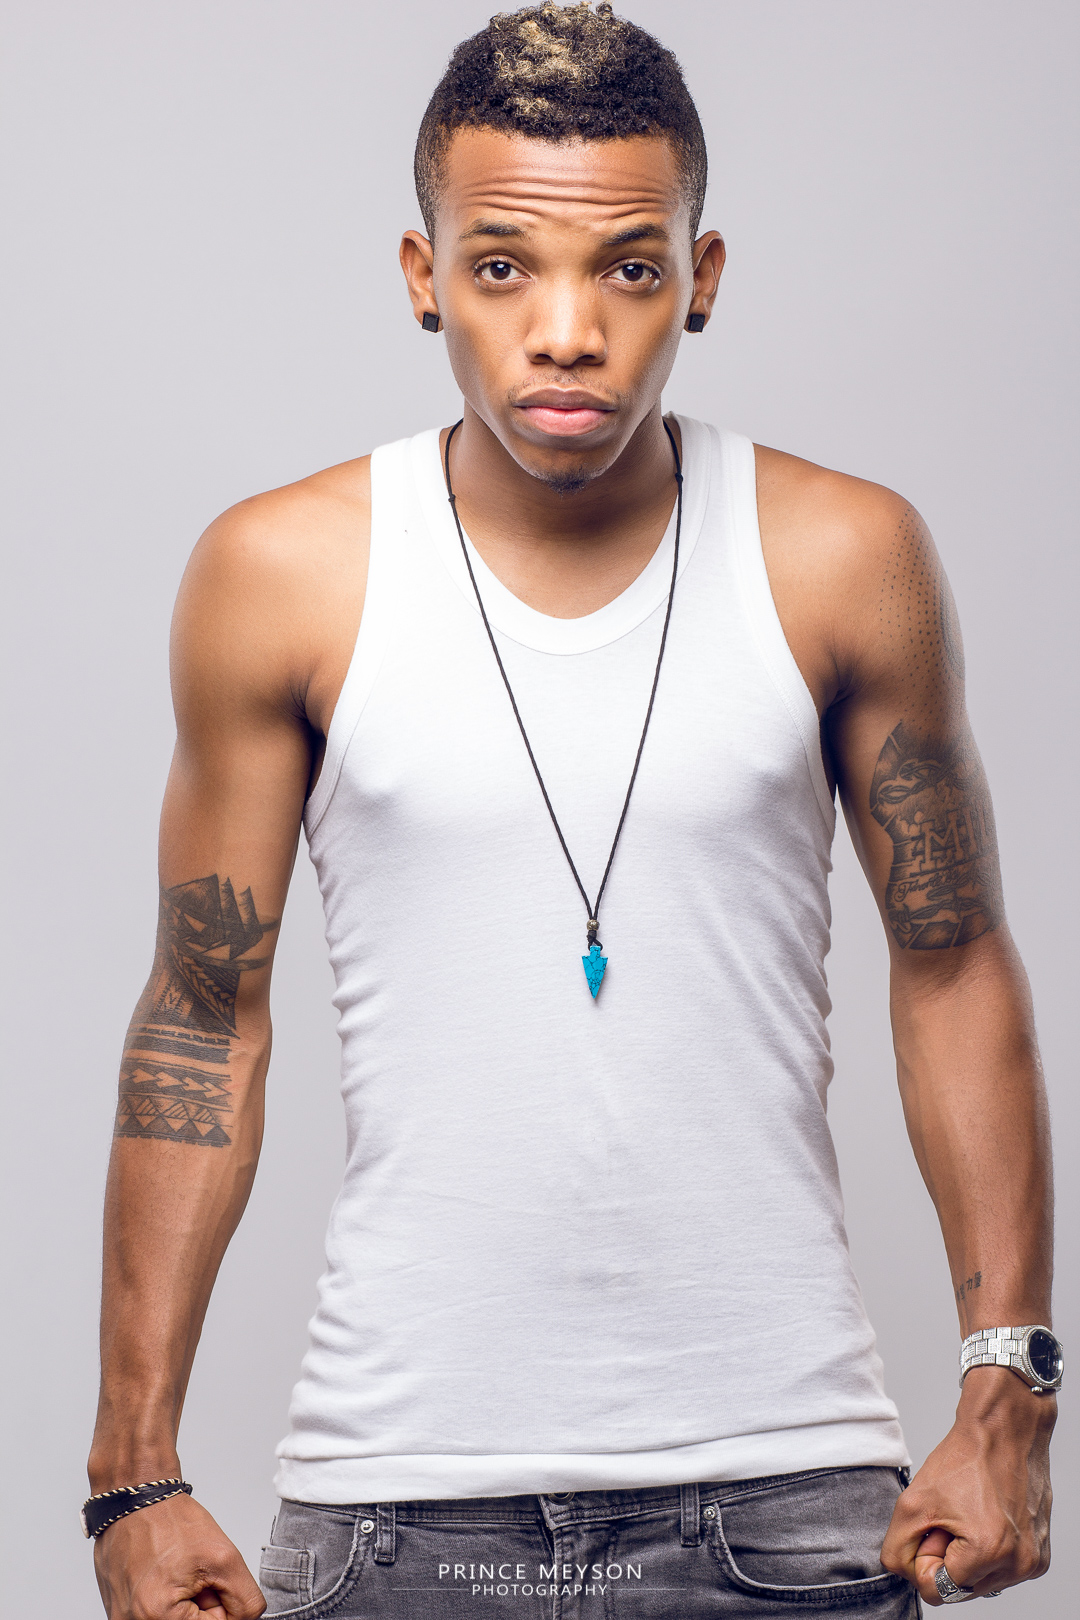 Tekno Asks Fans For Prayers